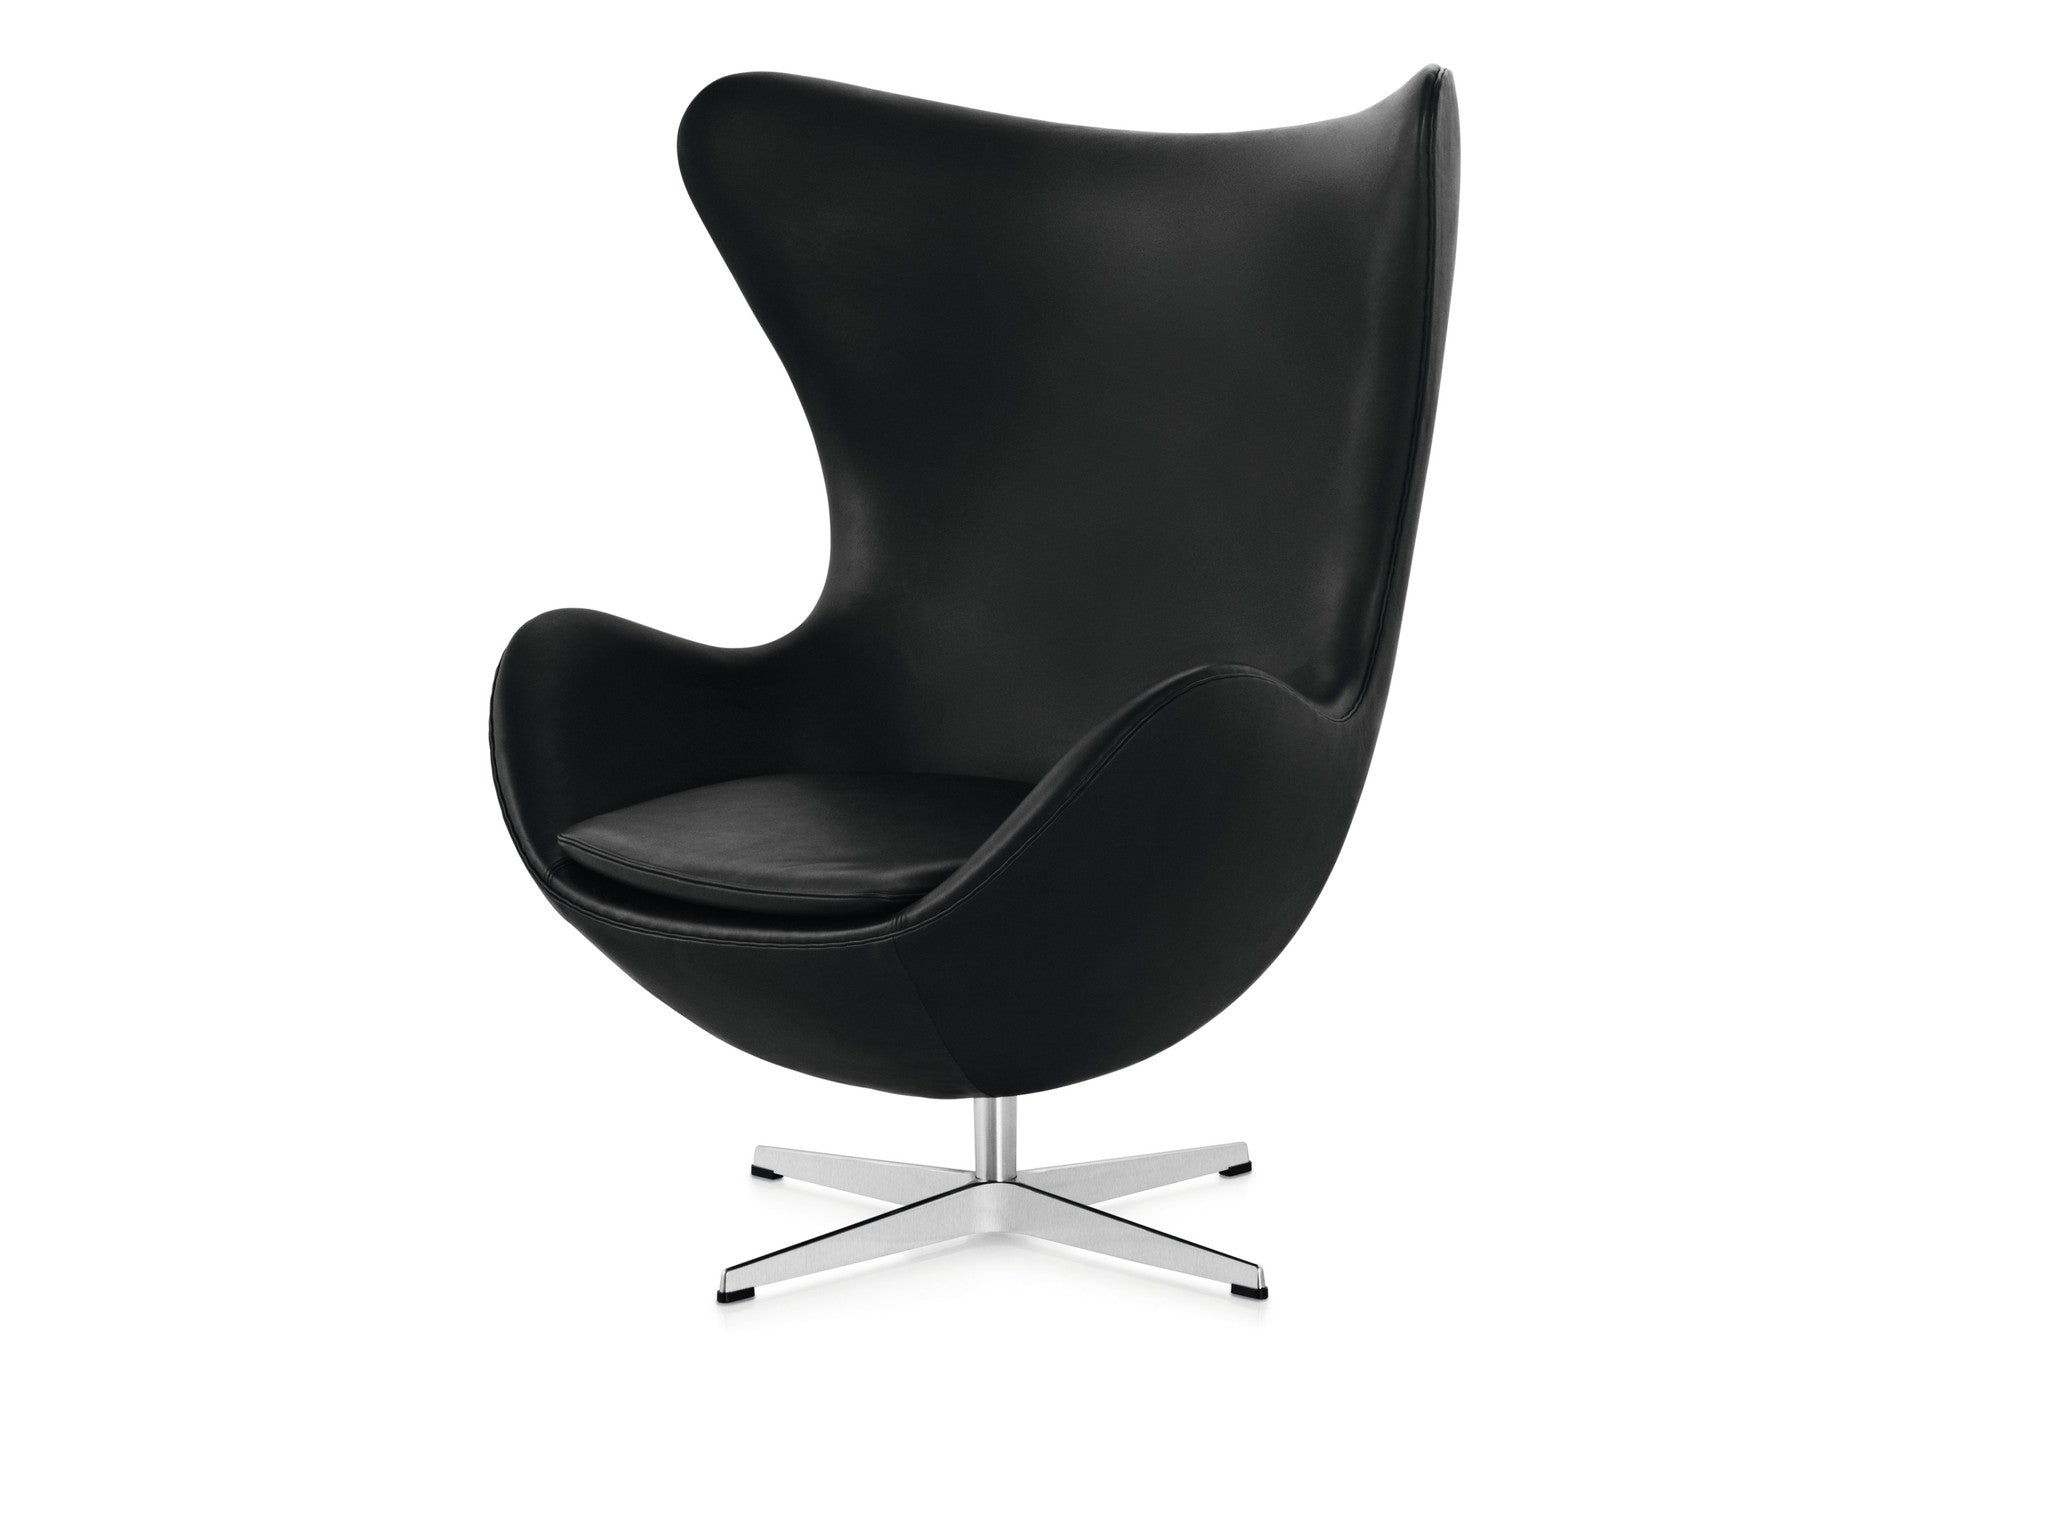 Arne jacobsen egg chair white - Arne Jacobsen Egg Chair Black Leather